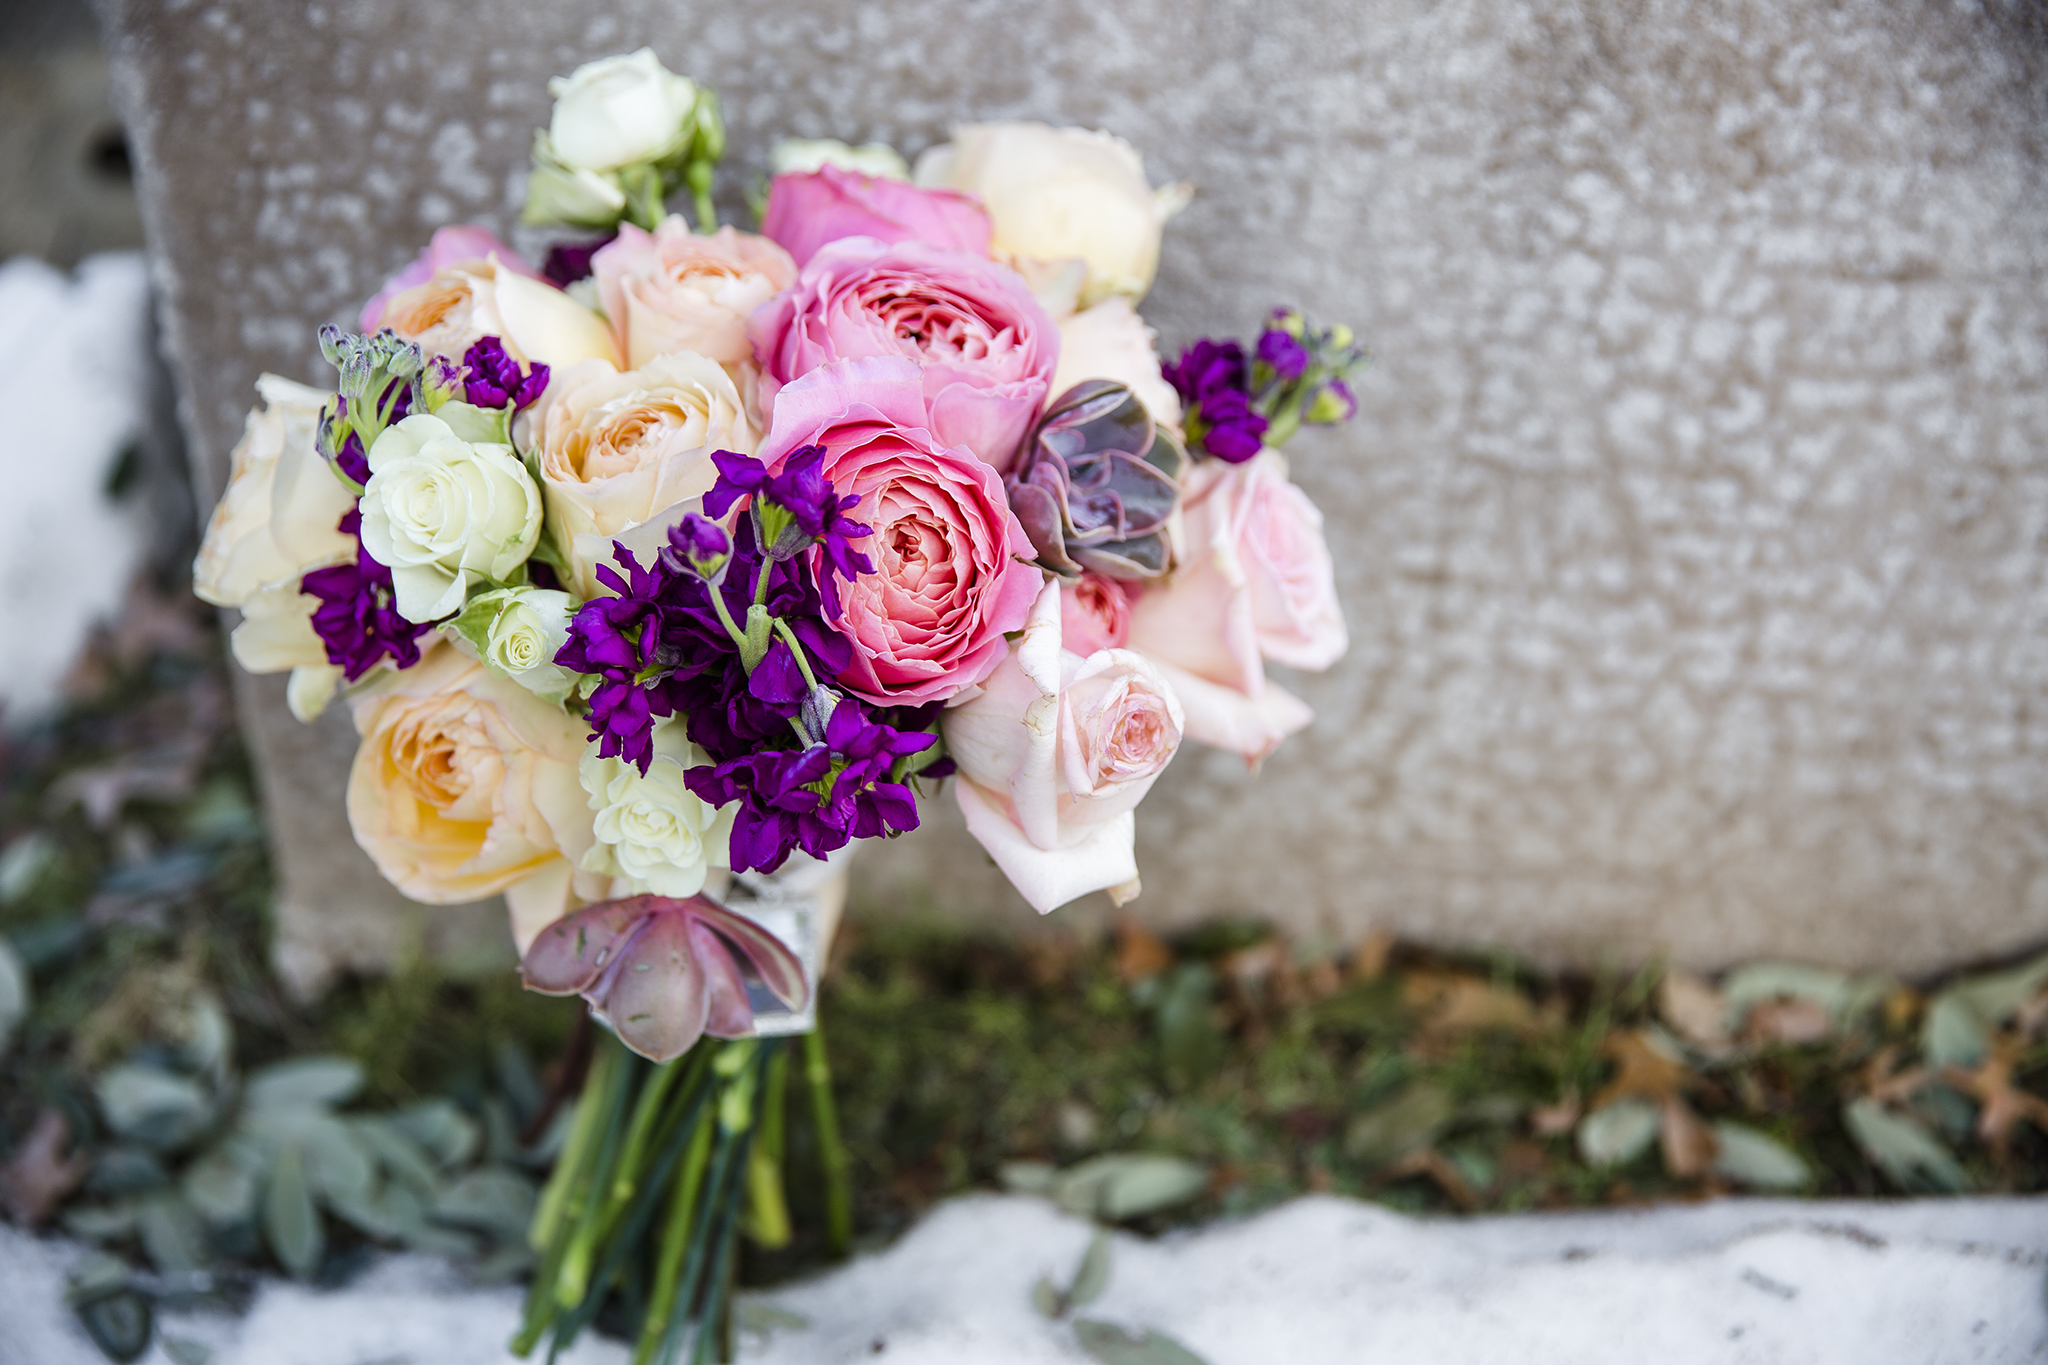 bride, bouquet, wedding flowers, wedding details